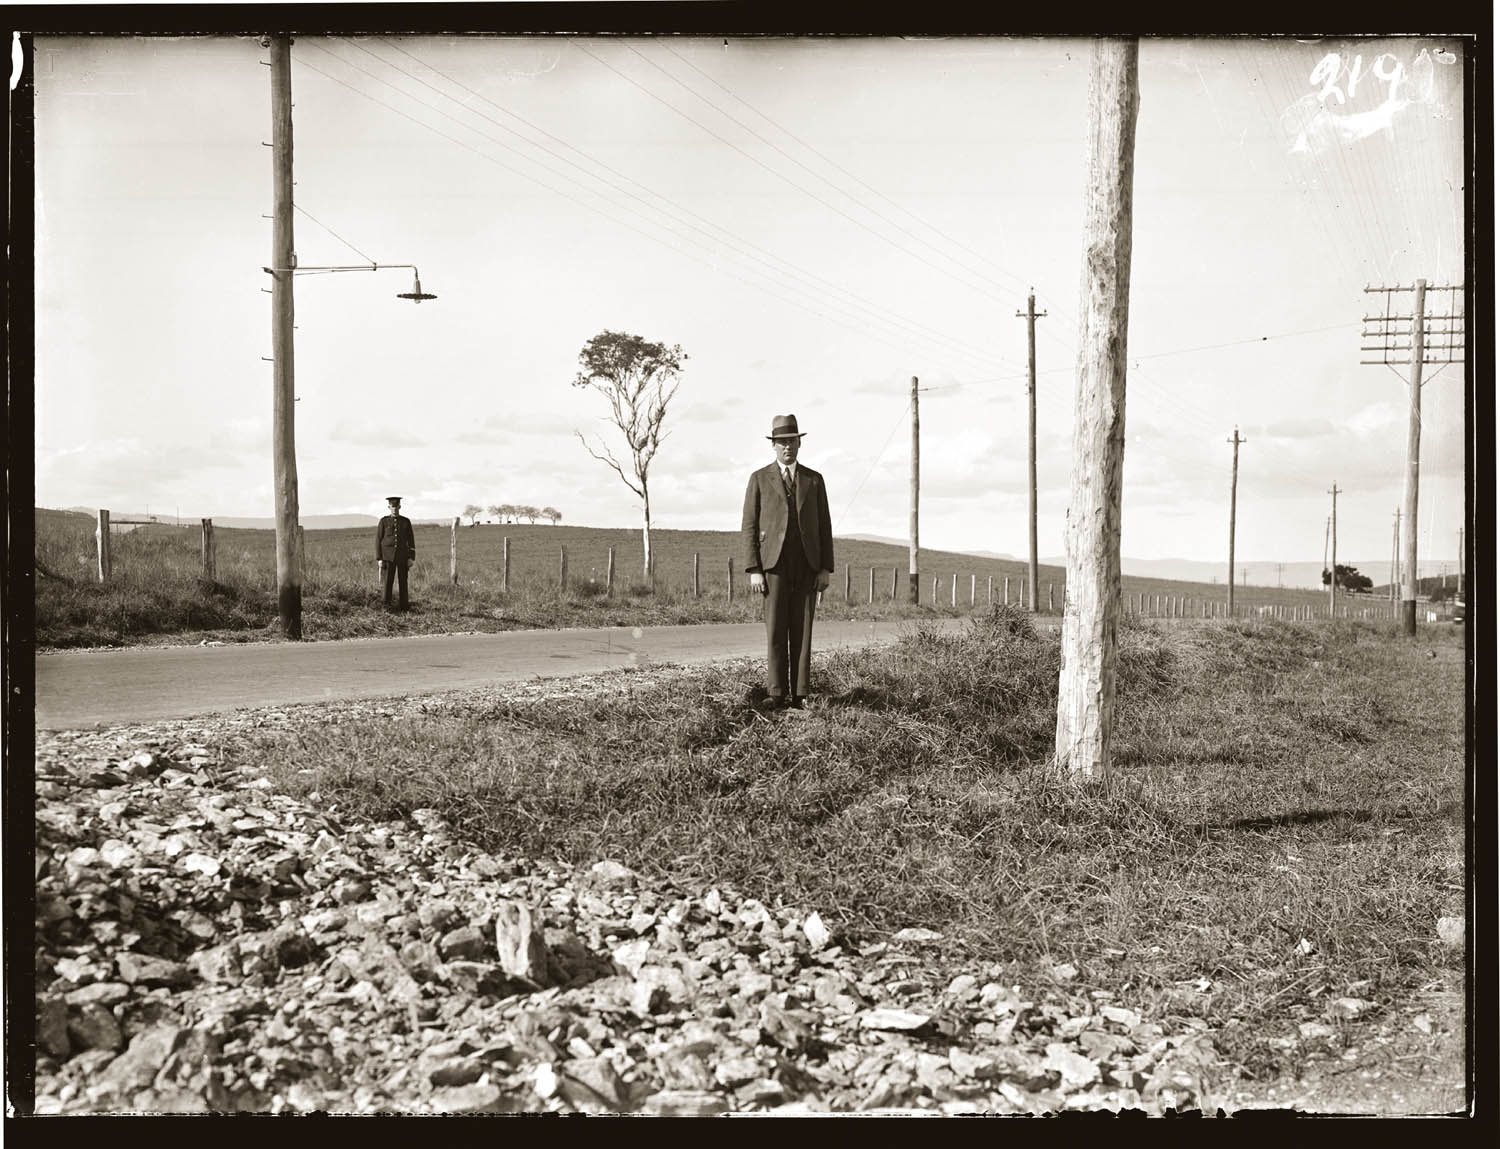 Telegraph poles & detectives 1920s. Date and place unknown.